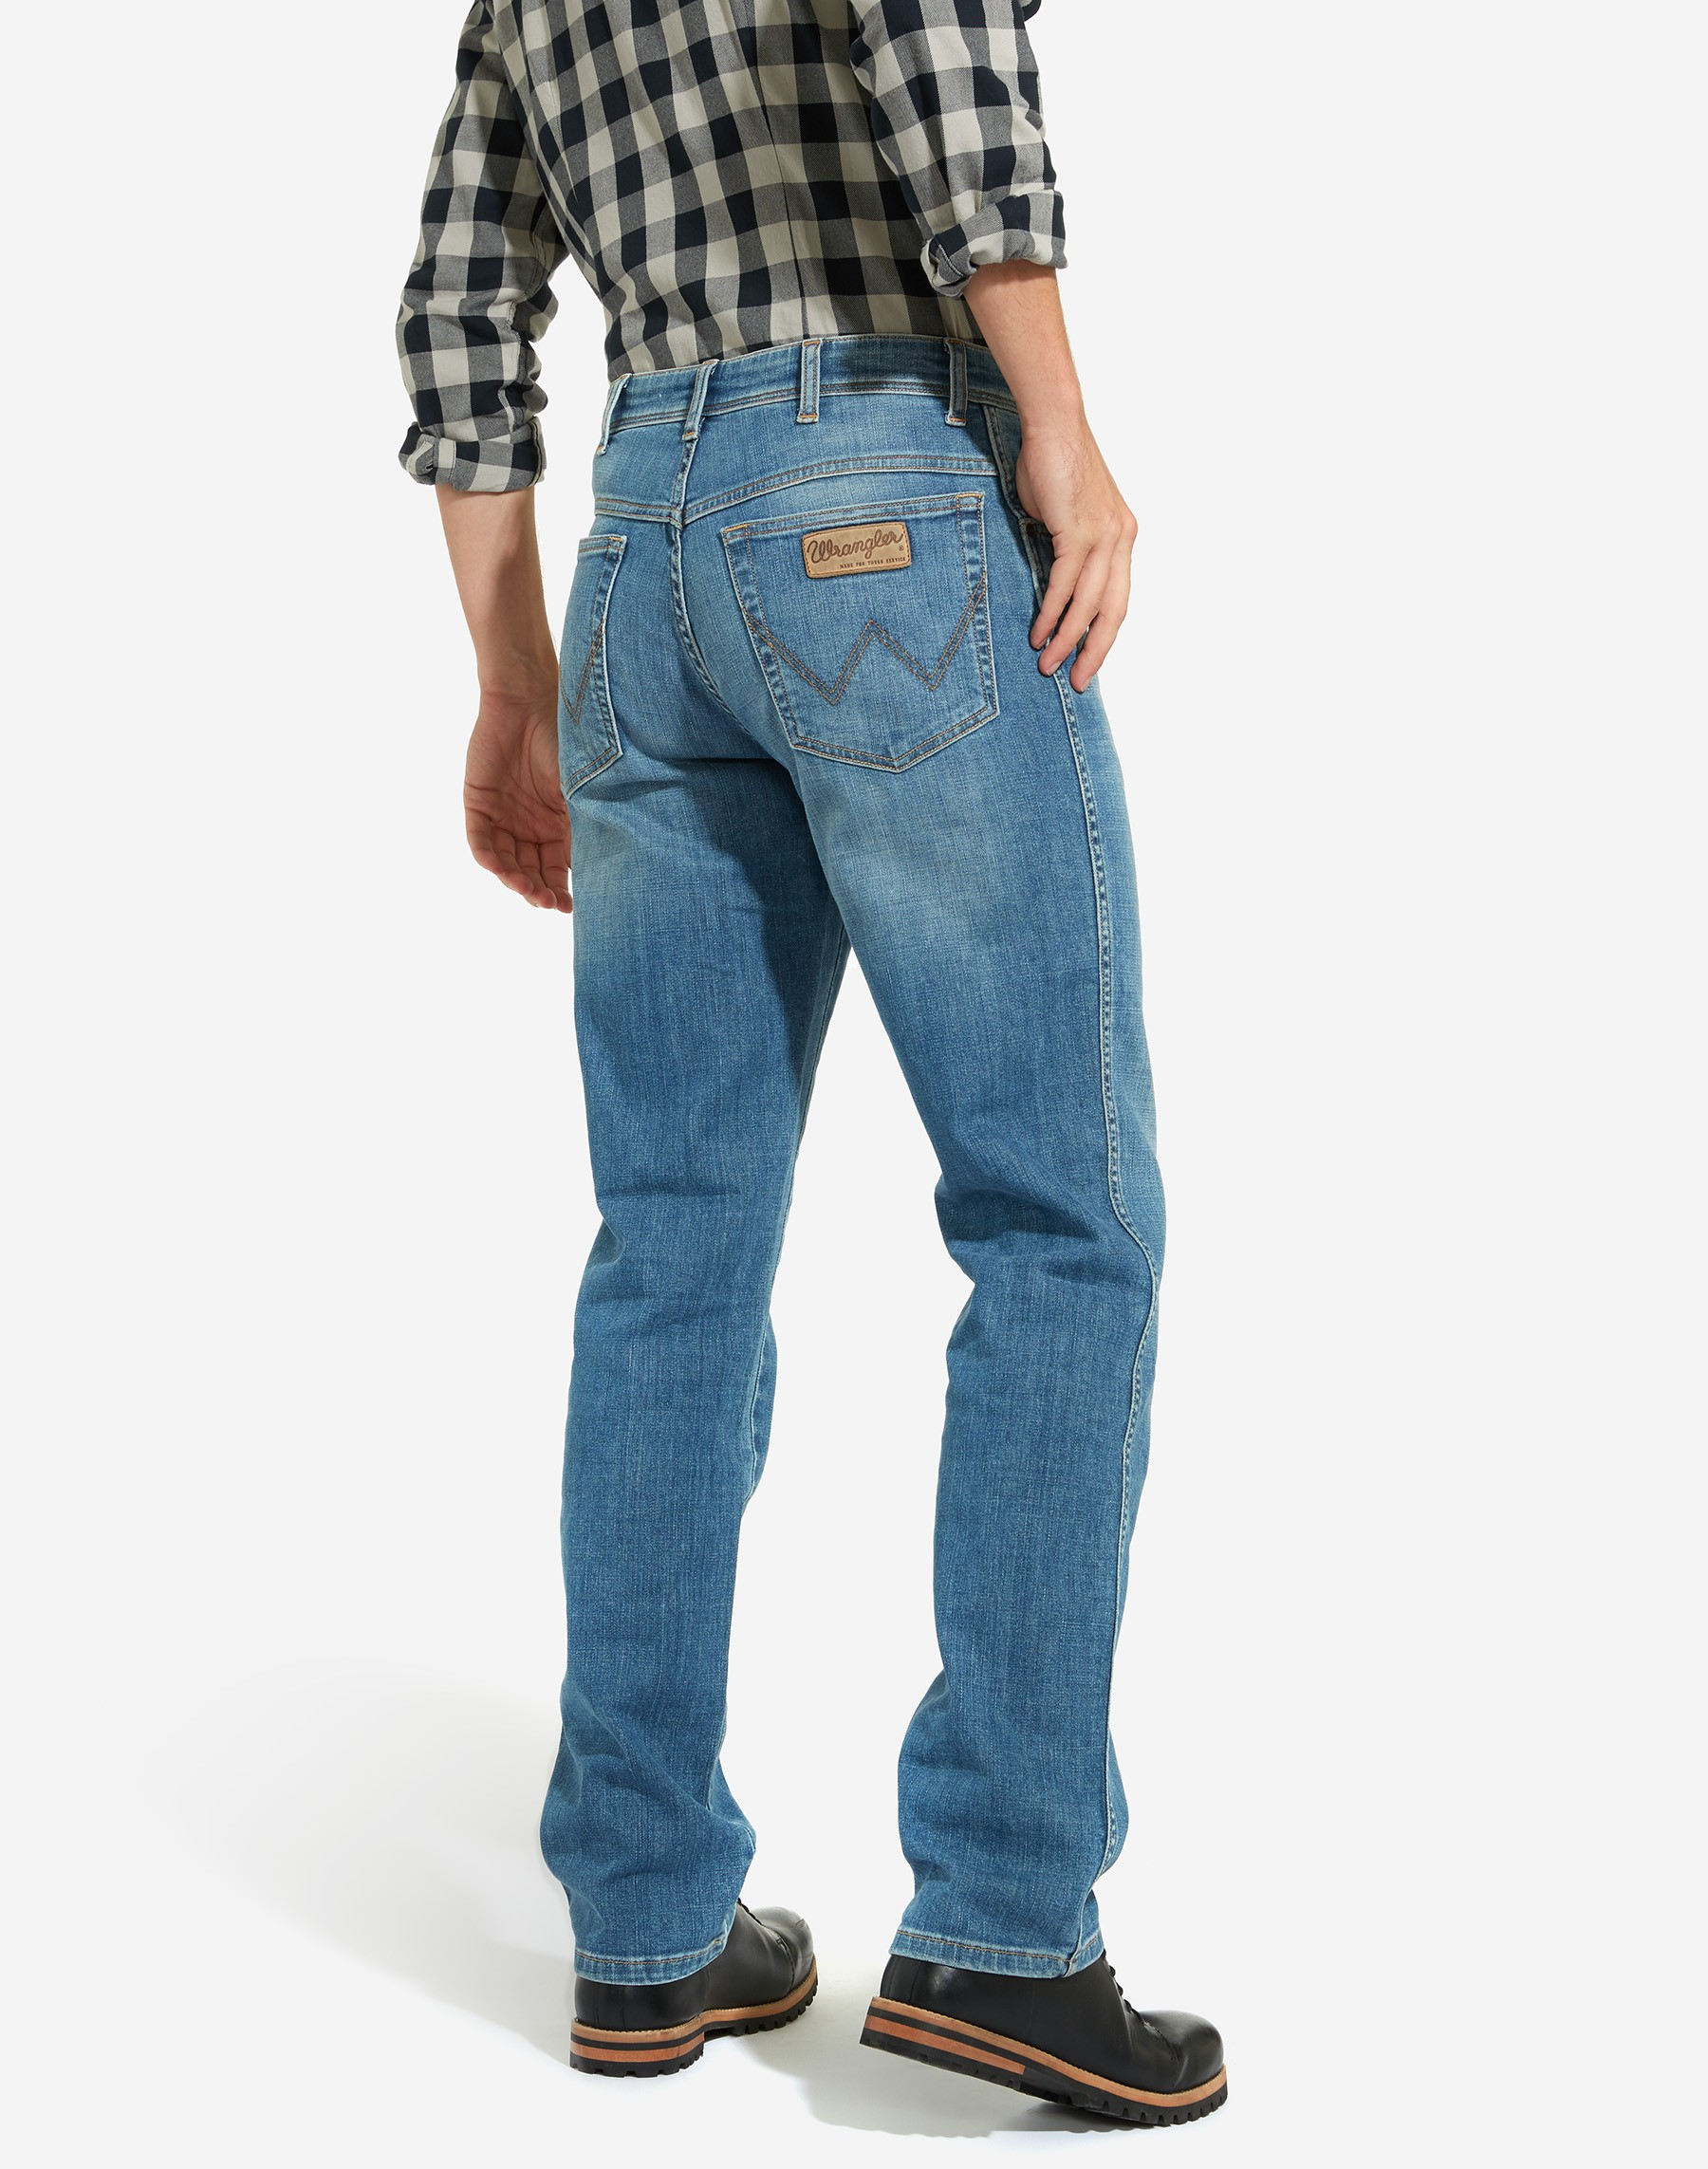 Mens-Wrangler-039-Texas-039-Jeans-Denim-Stretch-Original-Straight-Fit thumbnail 17